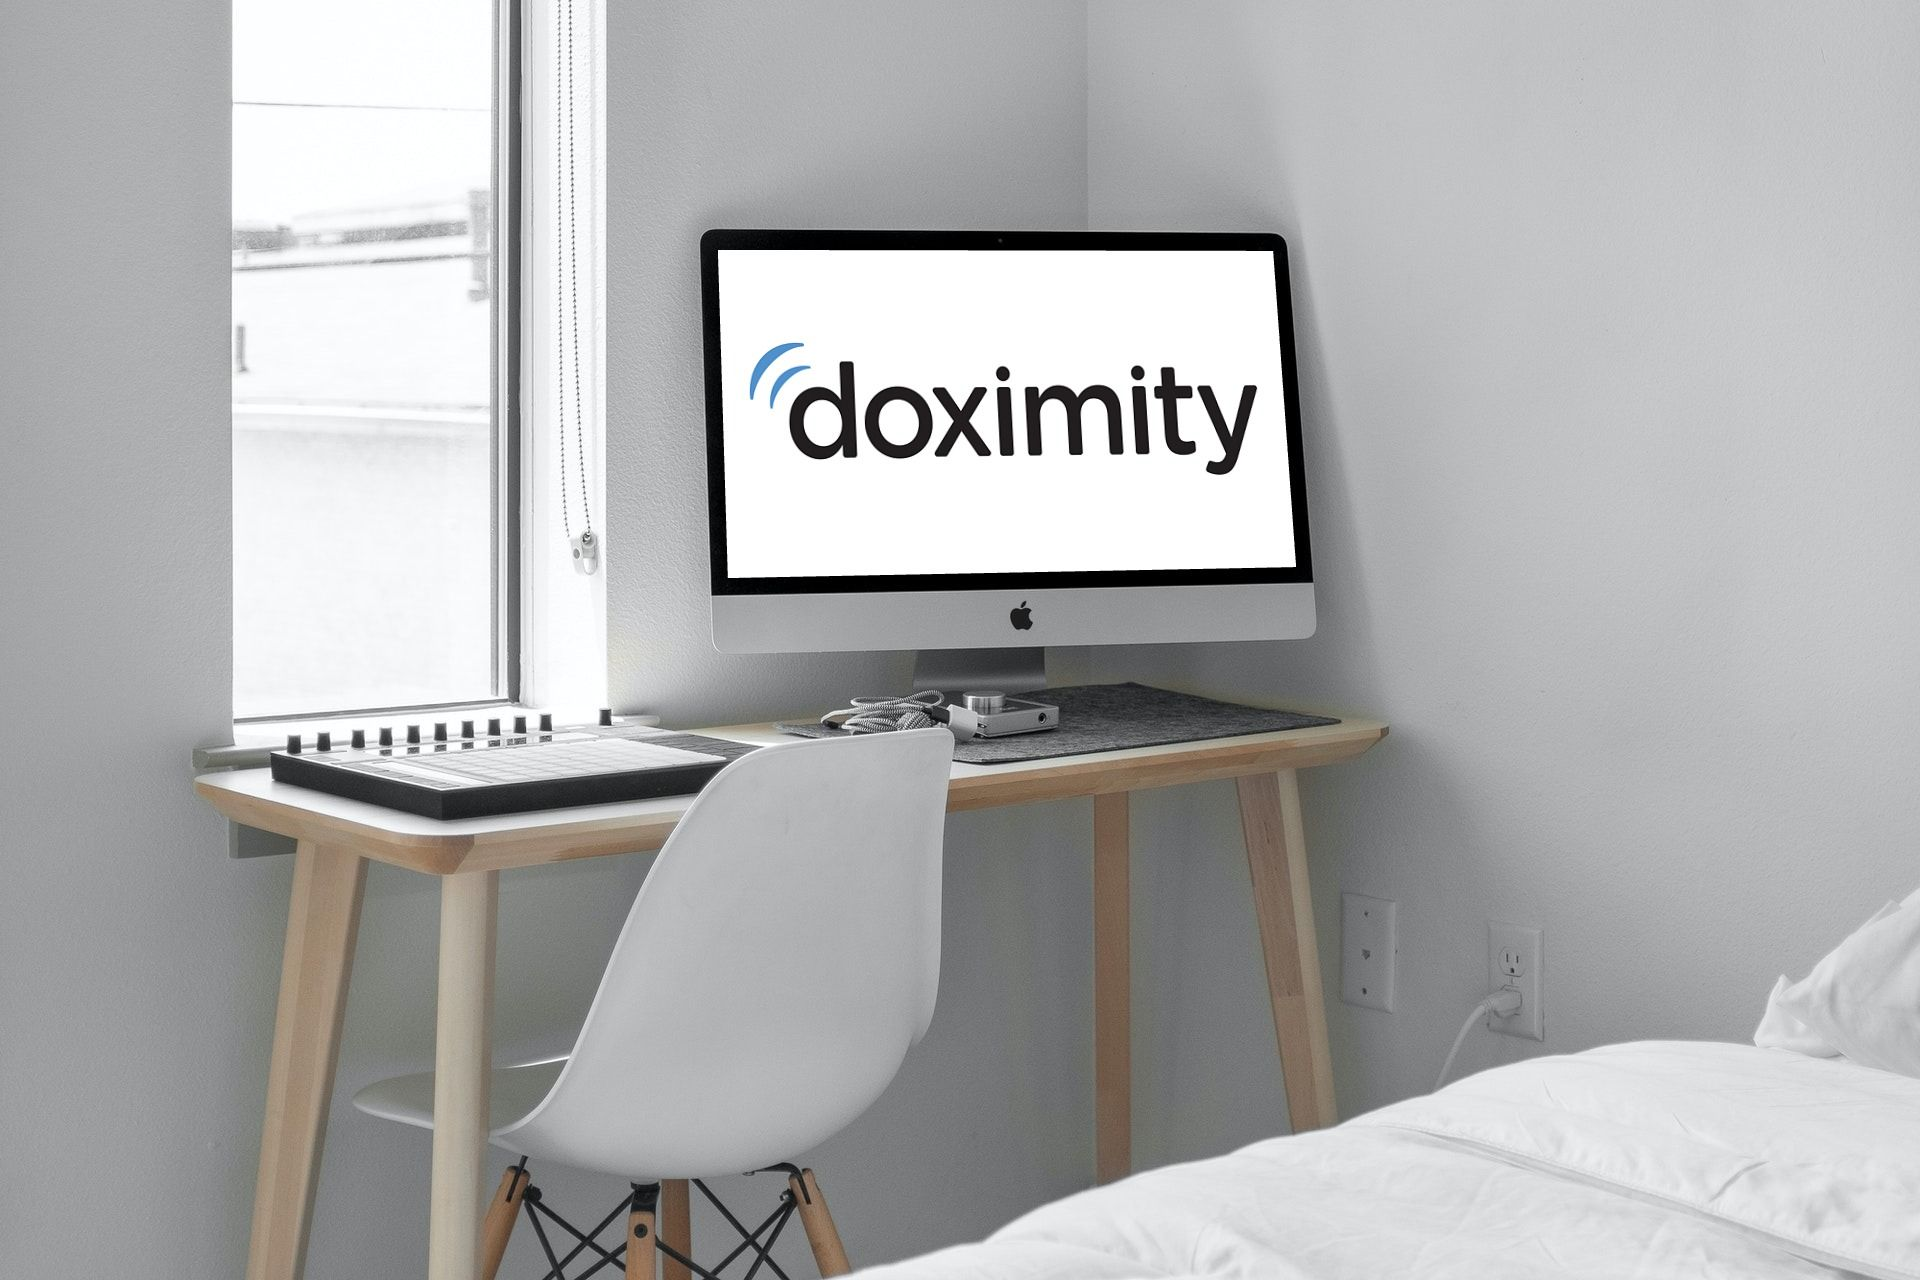 Doximity Initial Public Offering